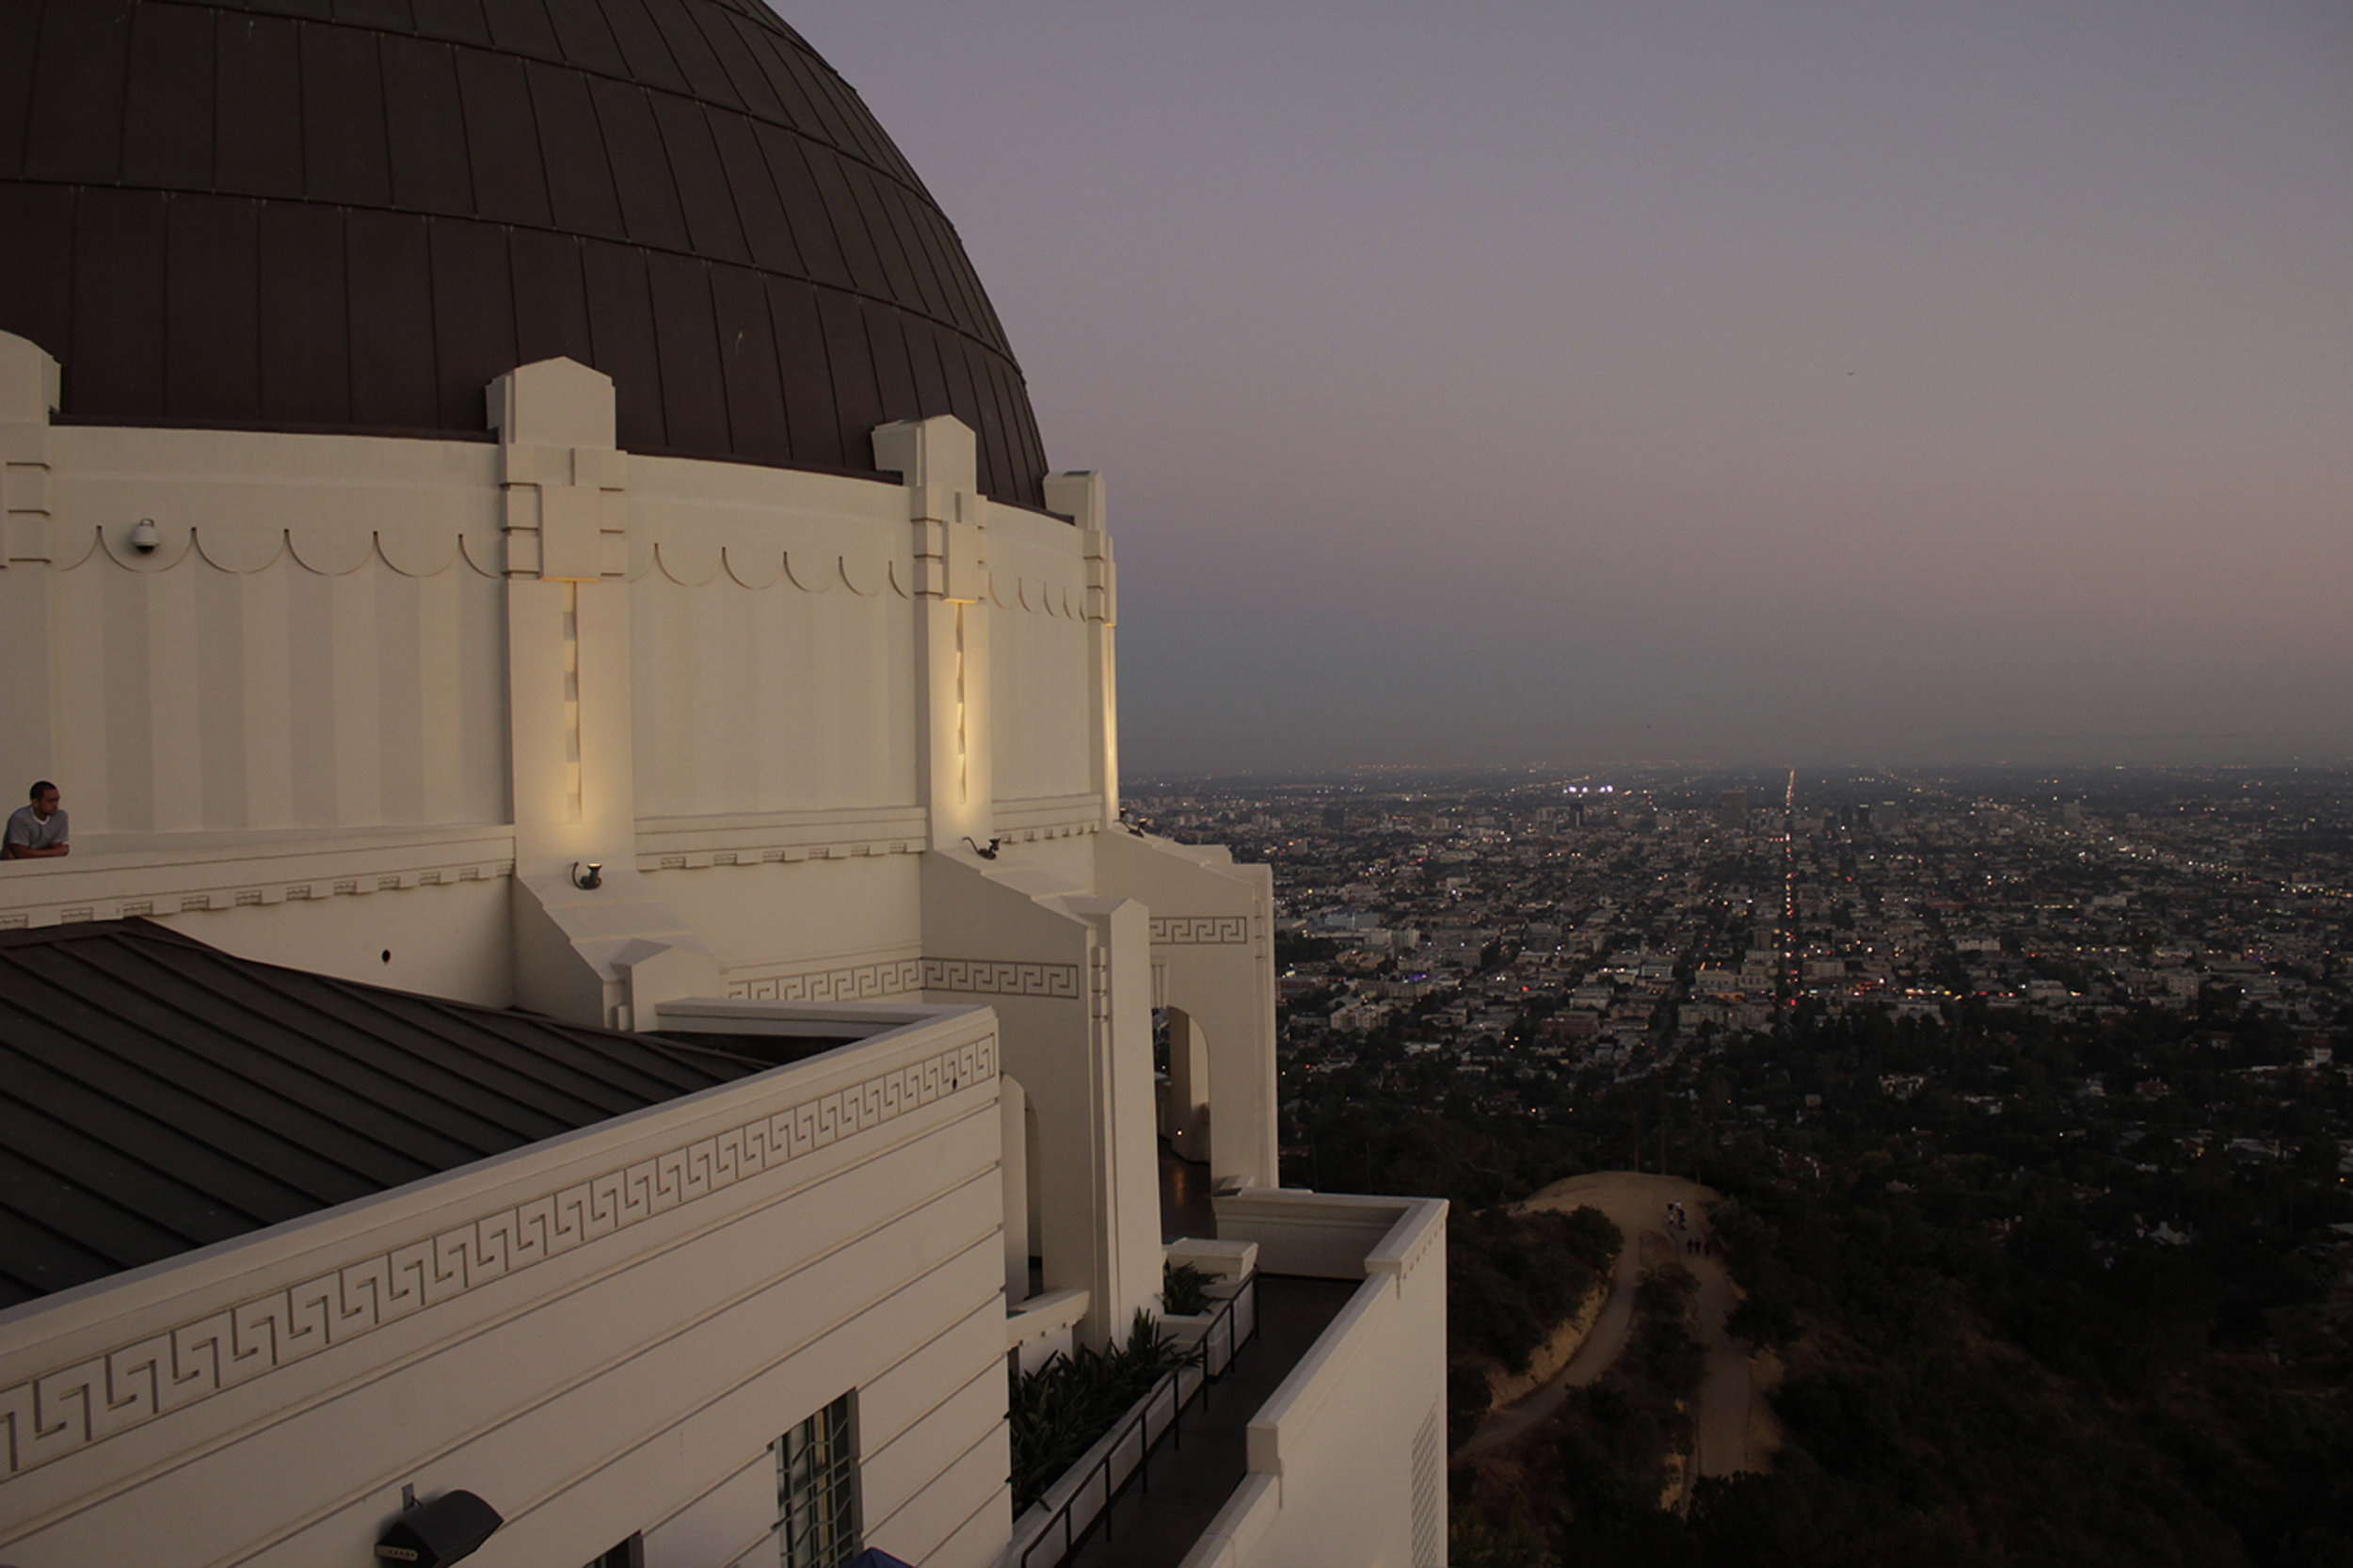 One of Los Angeles' most iconic buildings, the Griffith Observatory, and a view of the city at dusk.